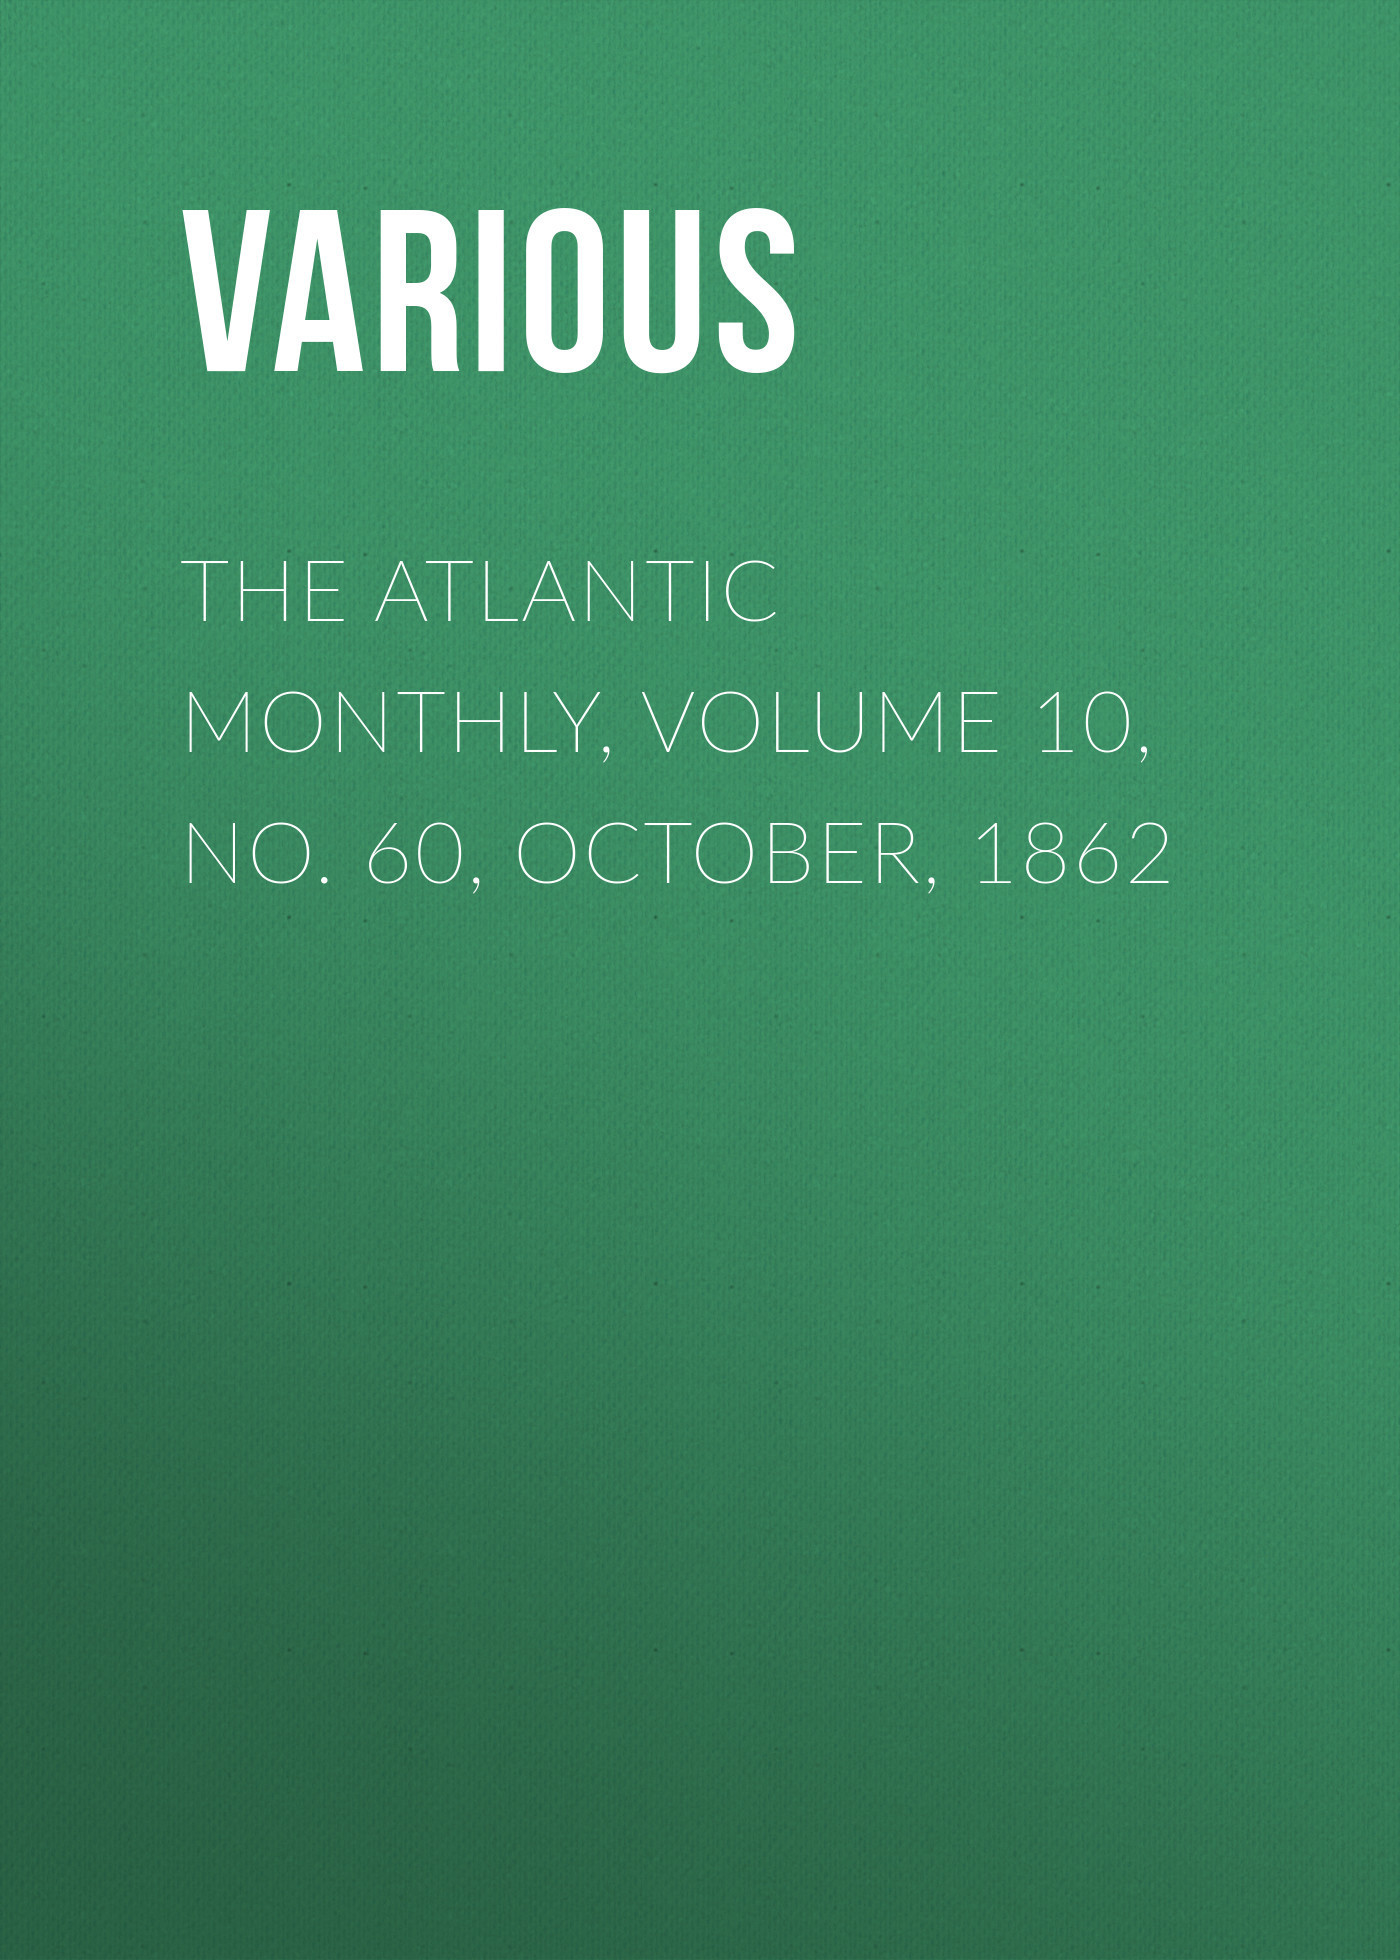 The Atlantic Monthly, Volume 10, No. 60, October, 1862